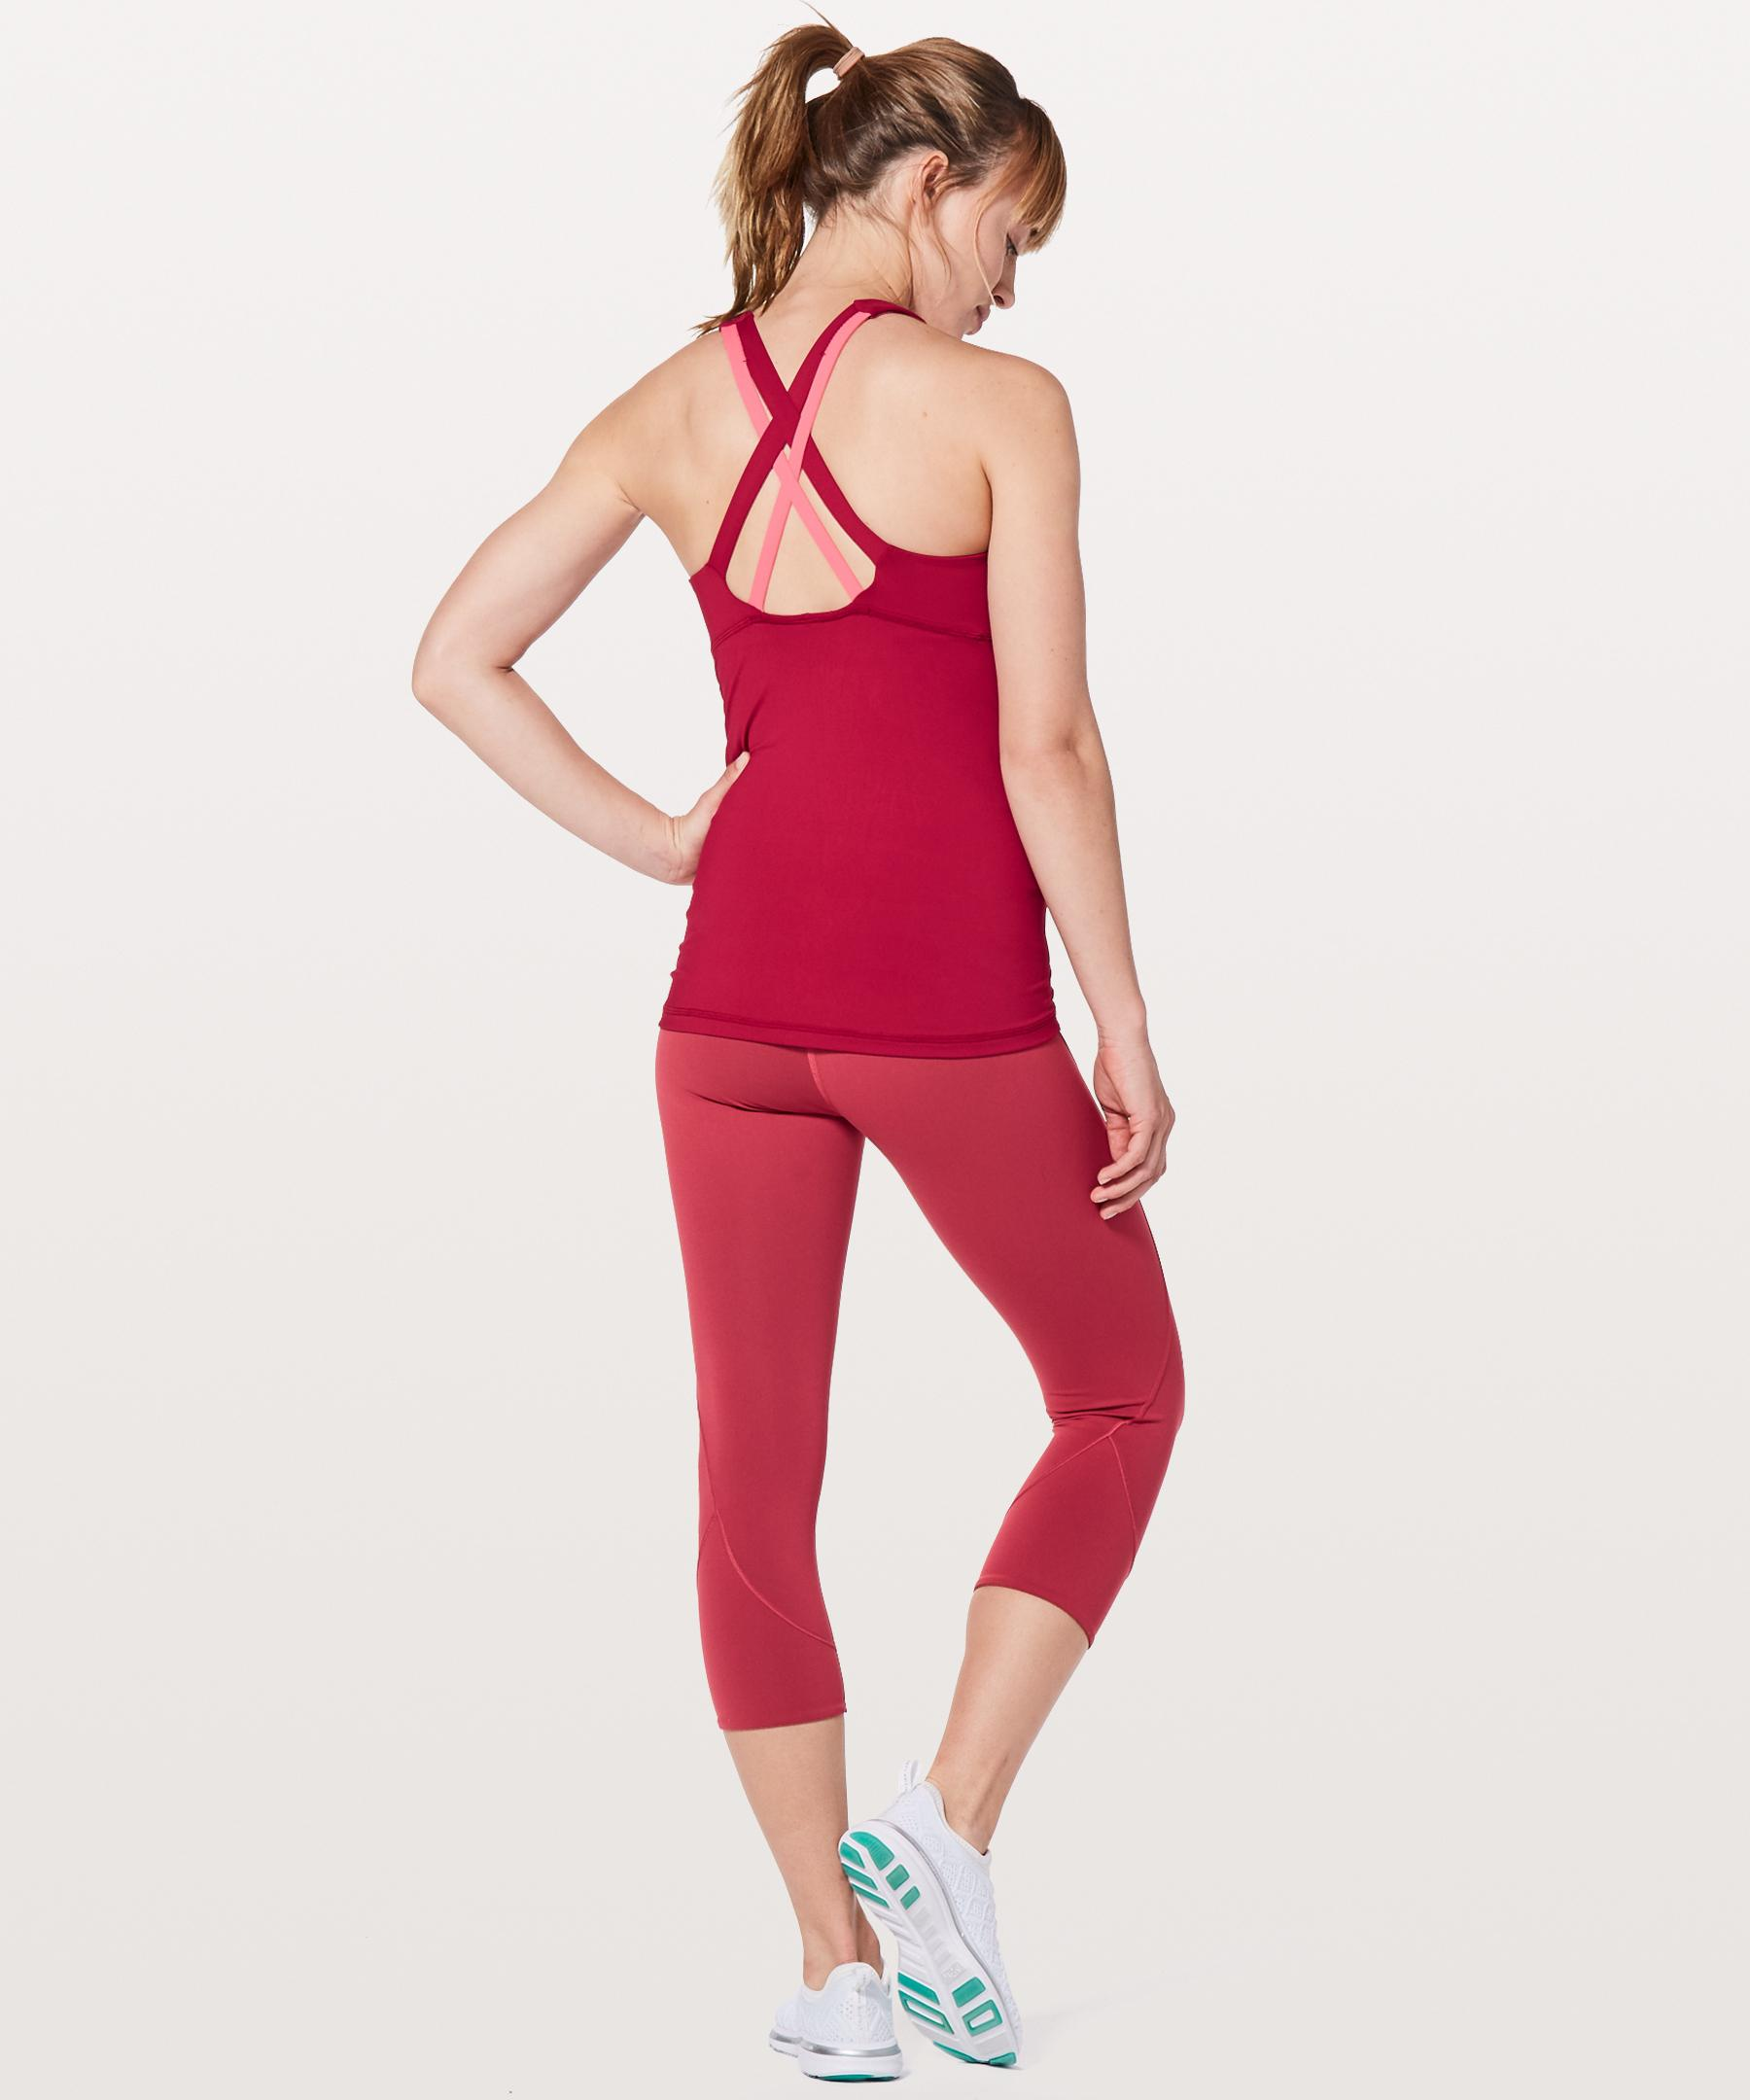 a03c266b0b Lyst - Lululemon Athletica Stash N  Run Tank  medium Support For B c Cup in  Red